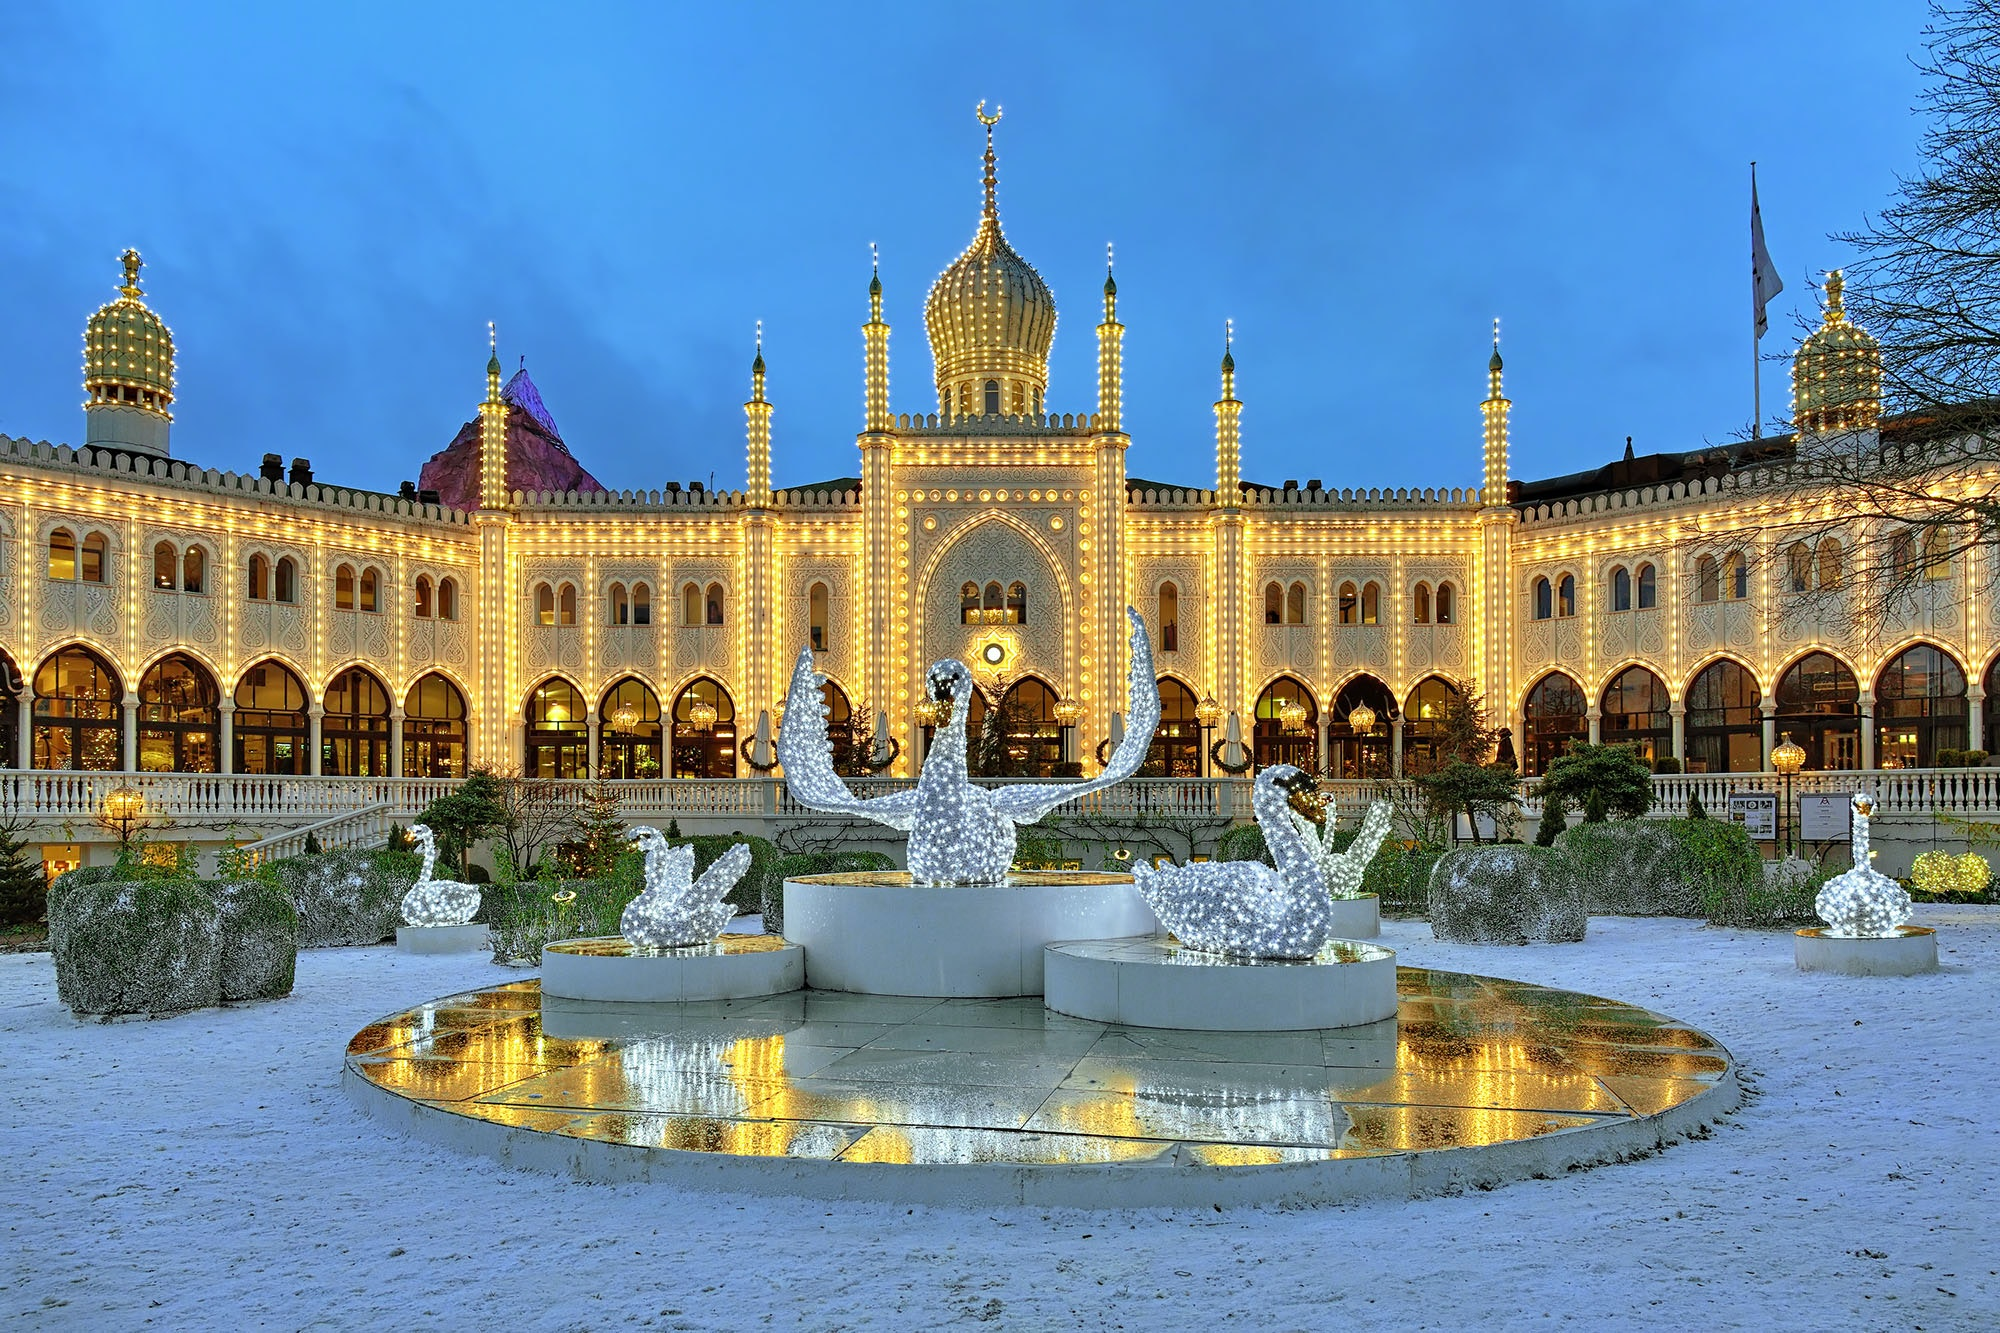 Copenhagen's Tivoli Gardens celebrates its 175th birthday this year.